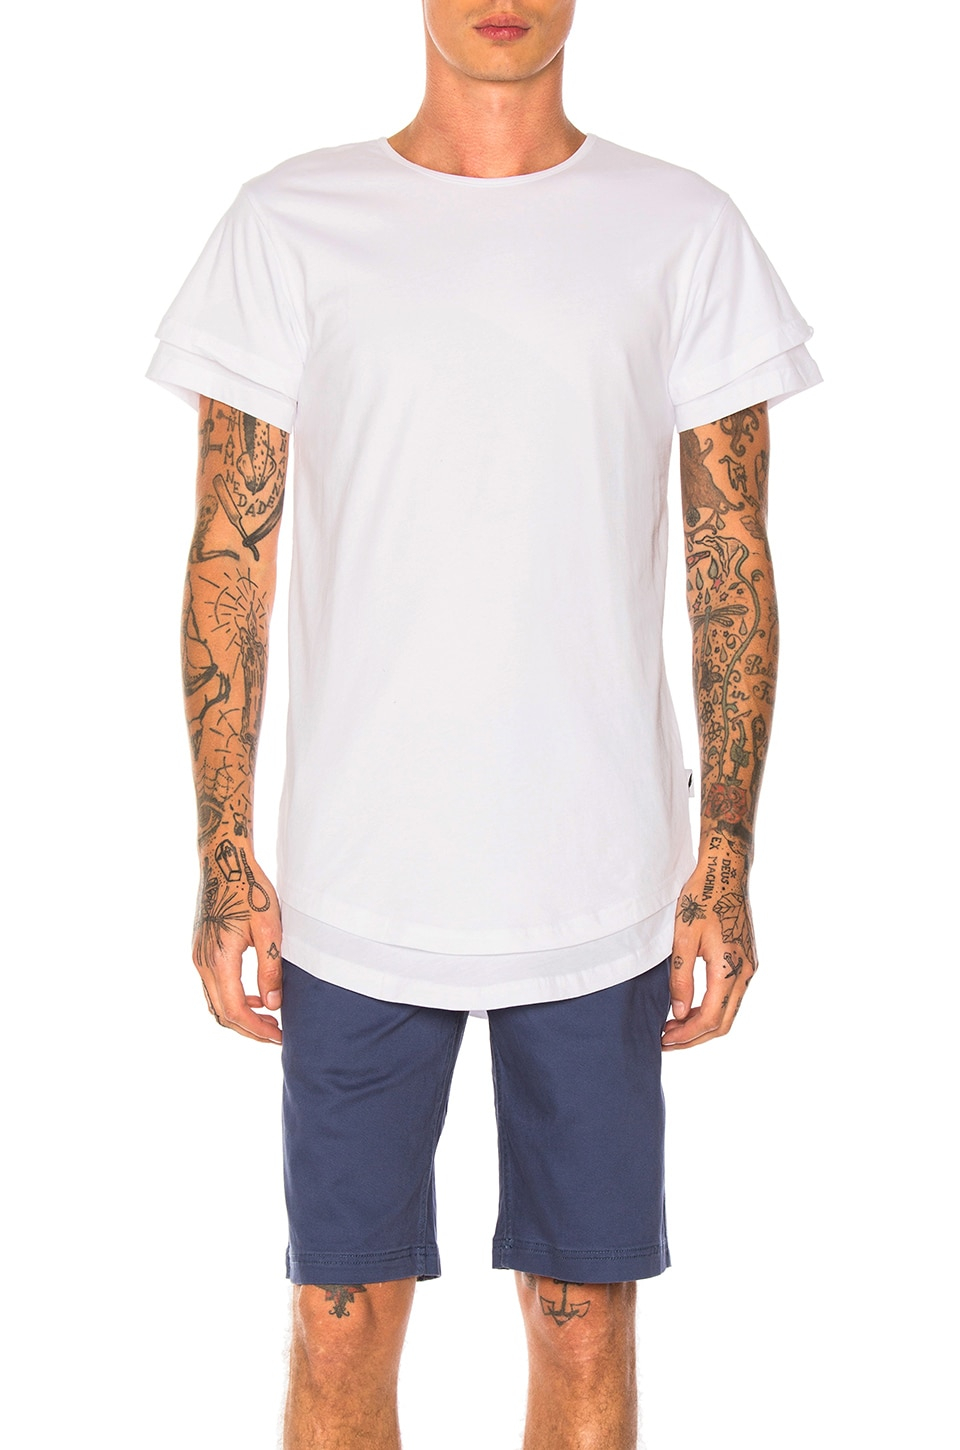 Mason Tee by Publish